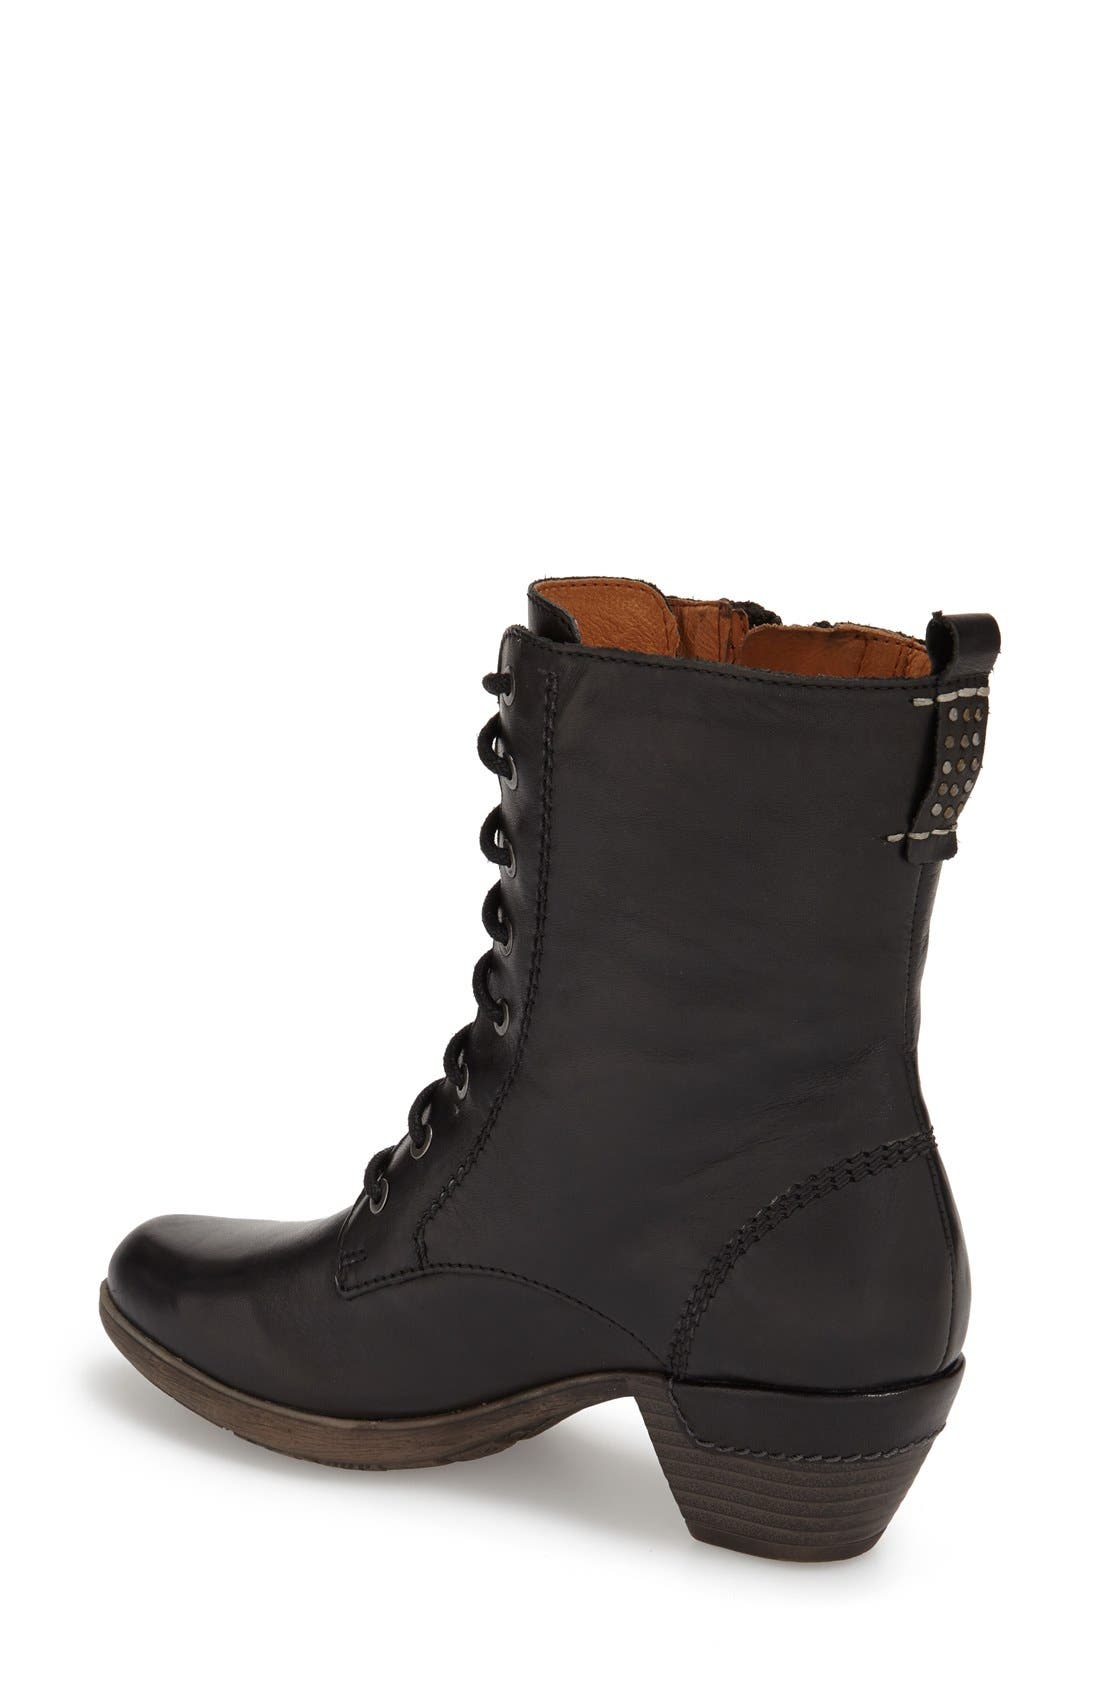 'Rotterdam' Lace-Up Boot,                             Alternate thumbnail 5, color,